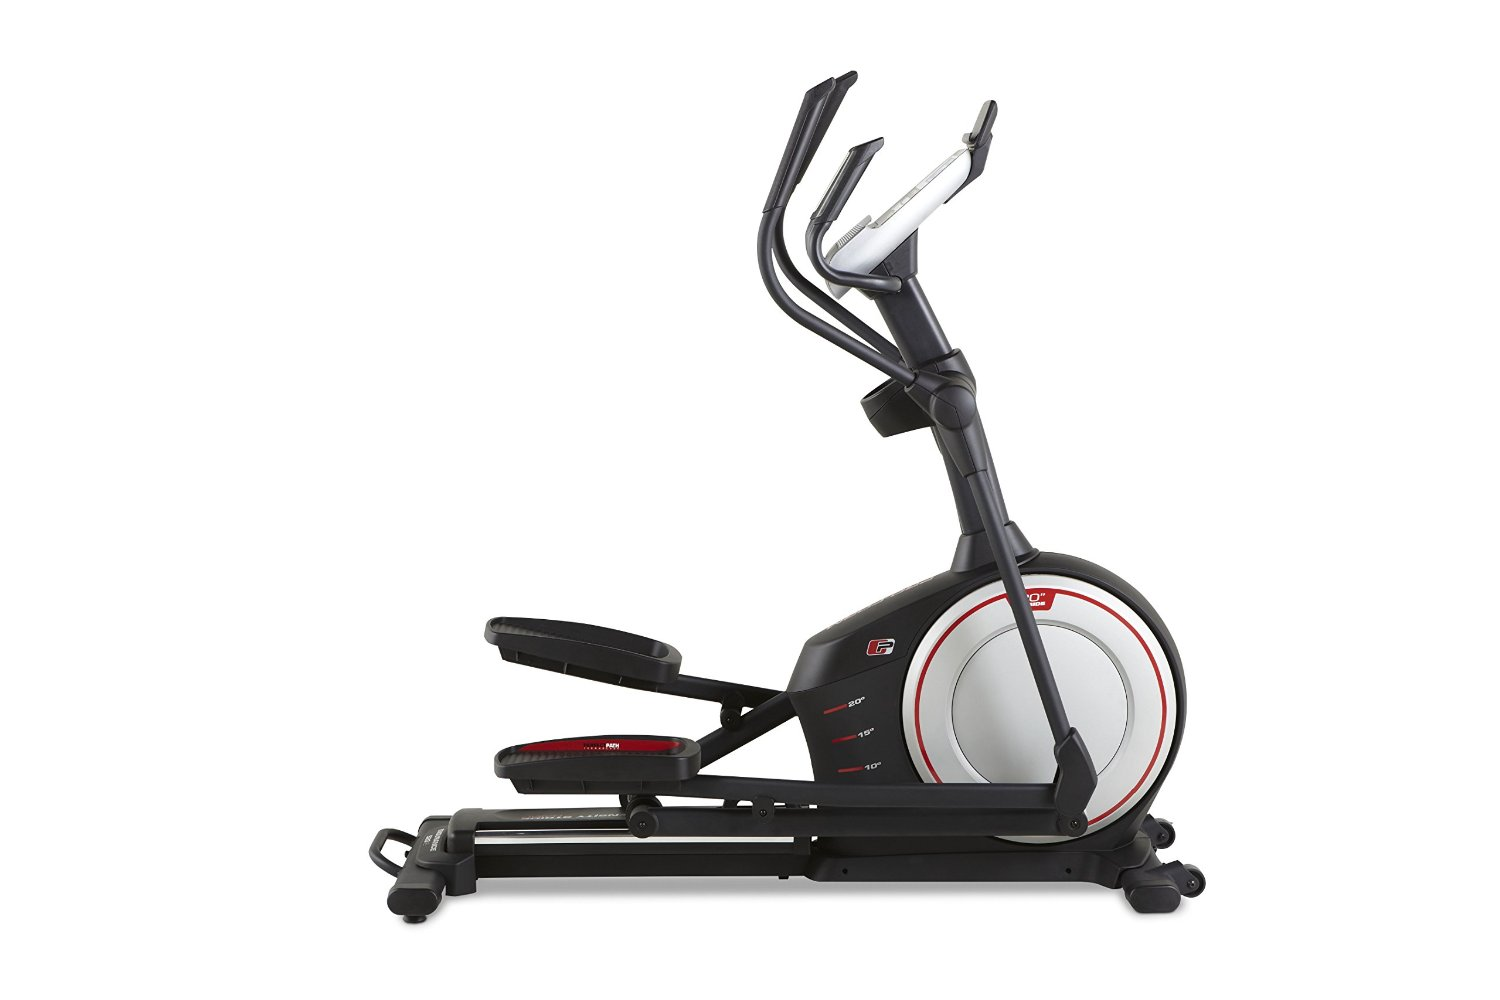 TOP 5 Proform Elliptical Reviews — [Choose the Best in 2019]